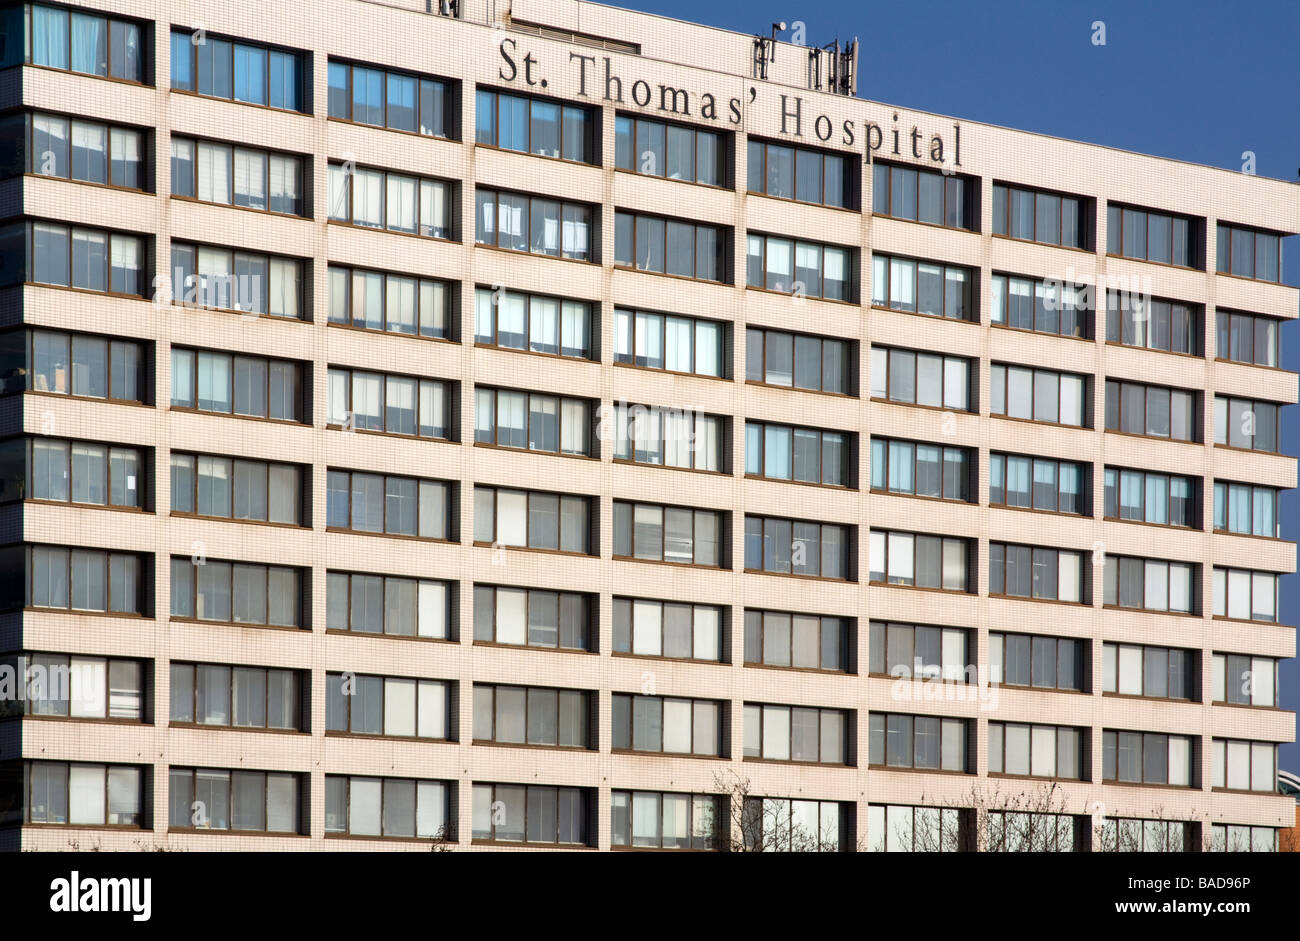 St. Thomas Hospital - London - Stock Image